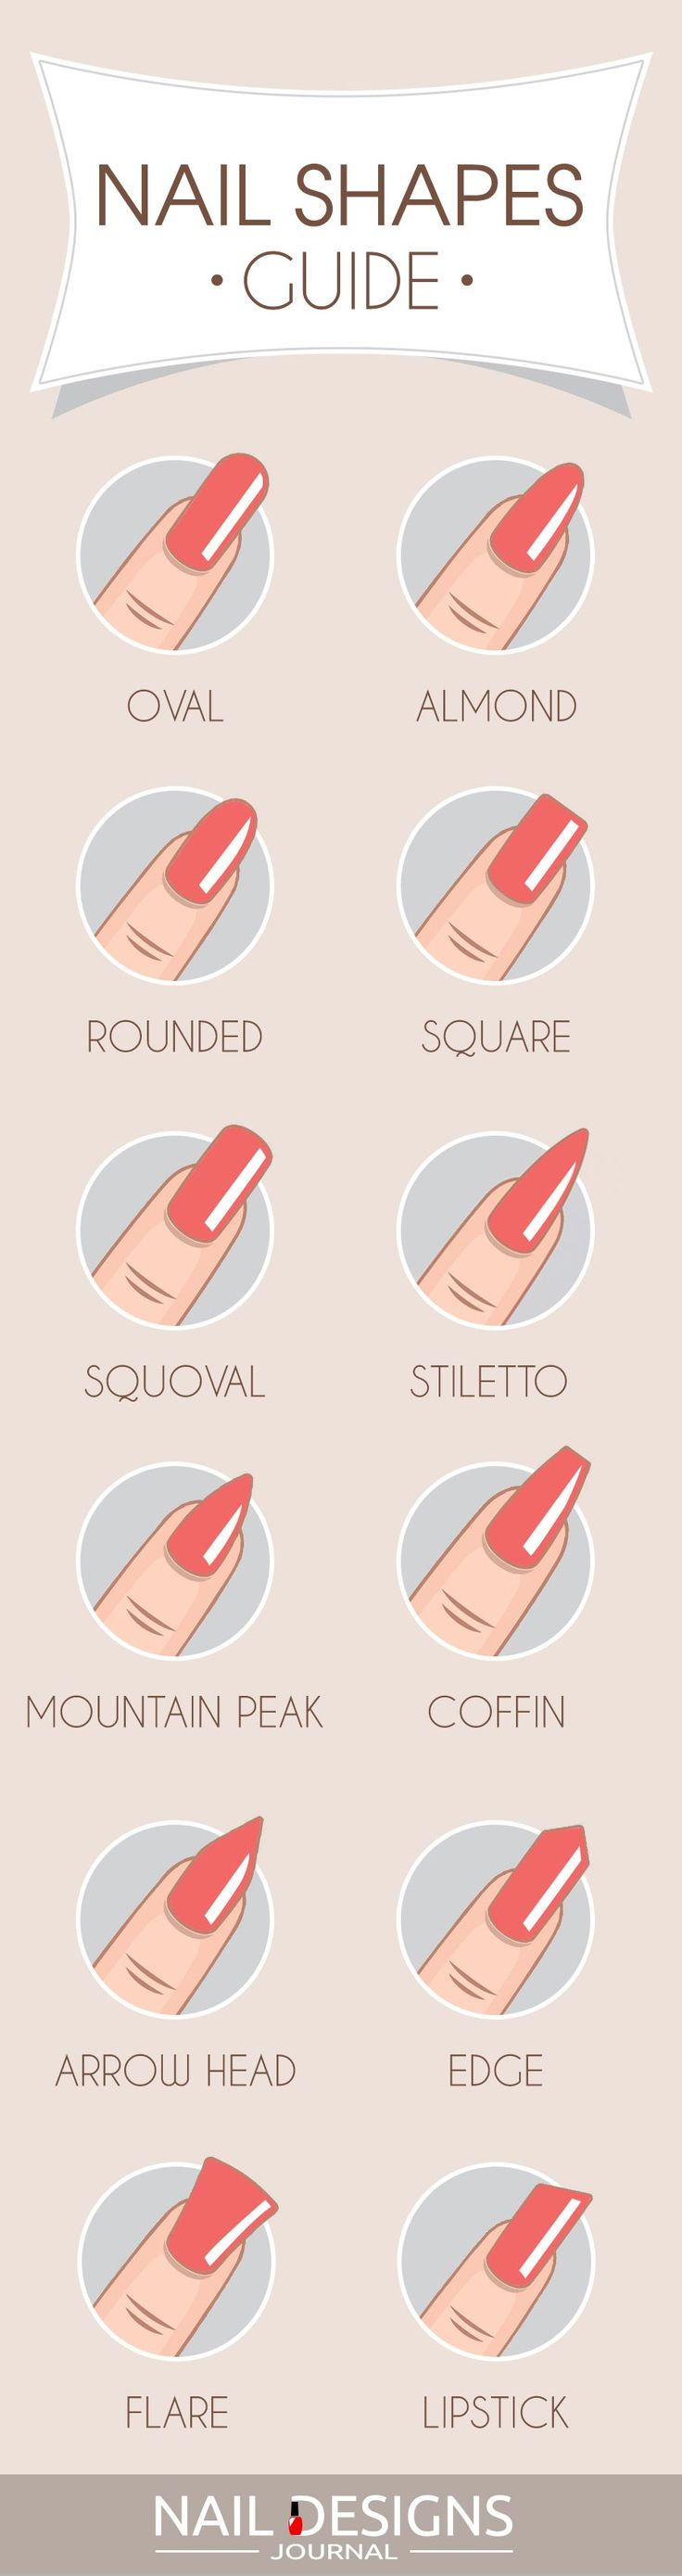 Most Popular And Trendy Nails Shapes For Glamorous Look Acrylics Trendy Nails Different